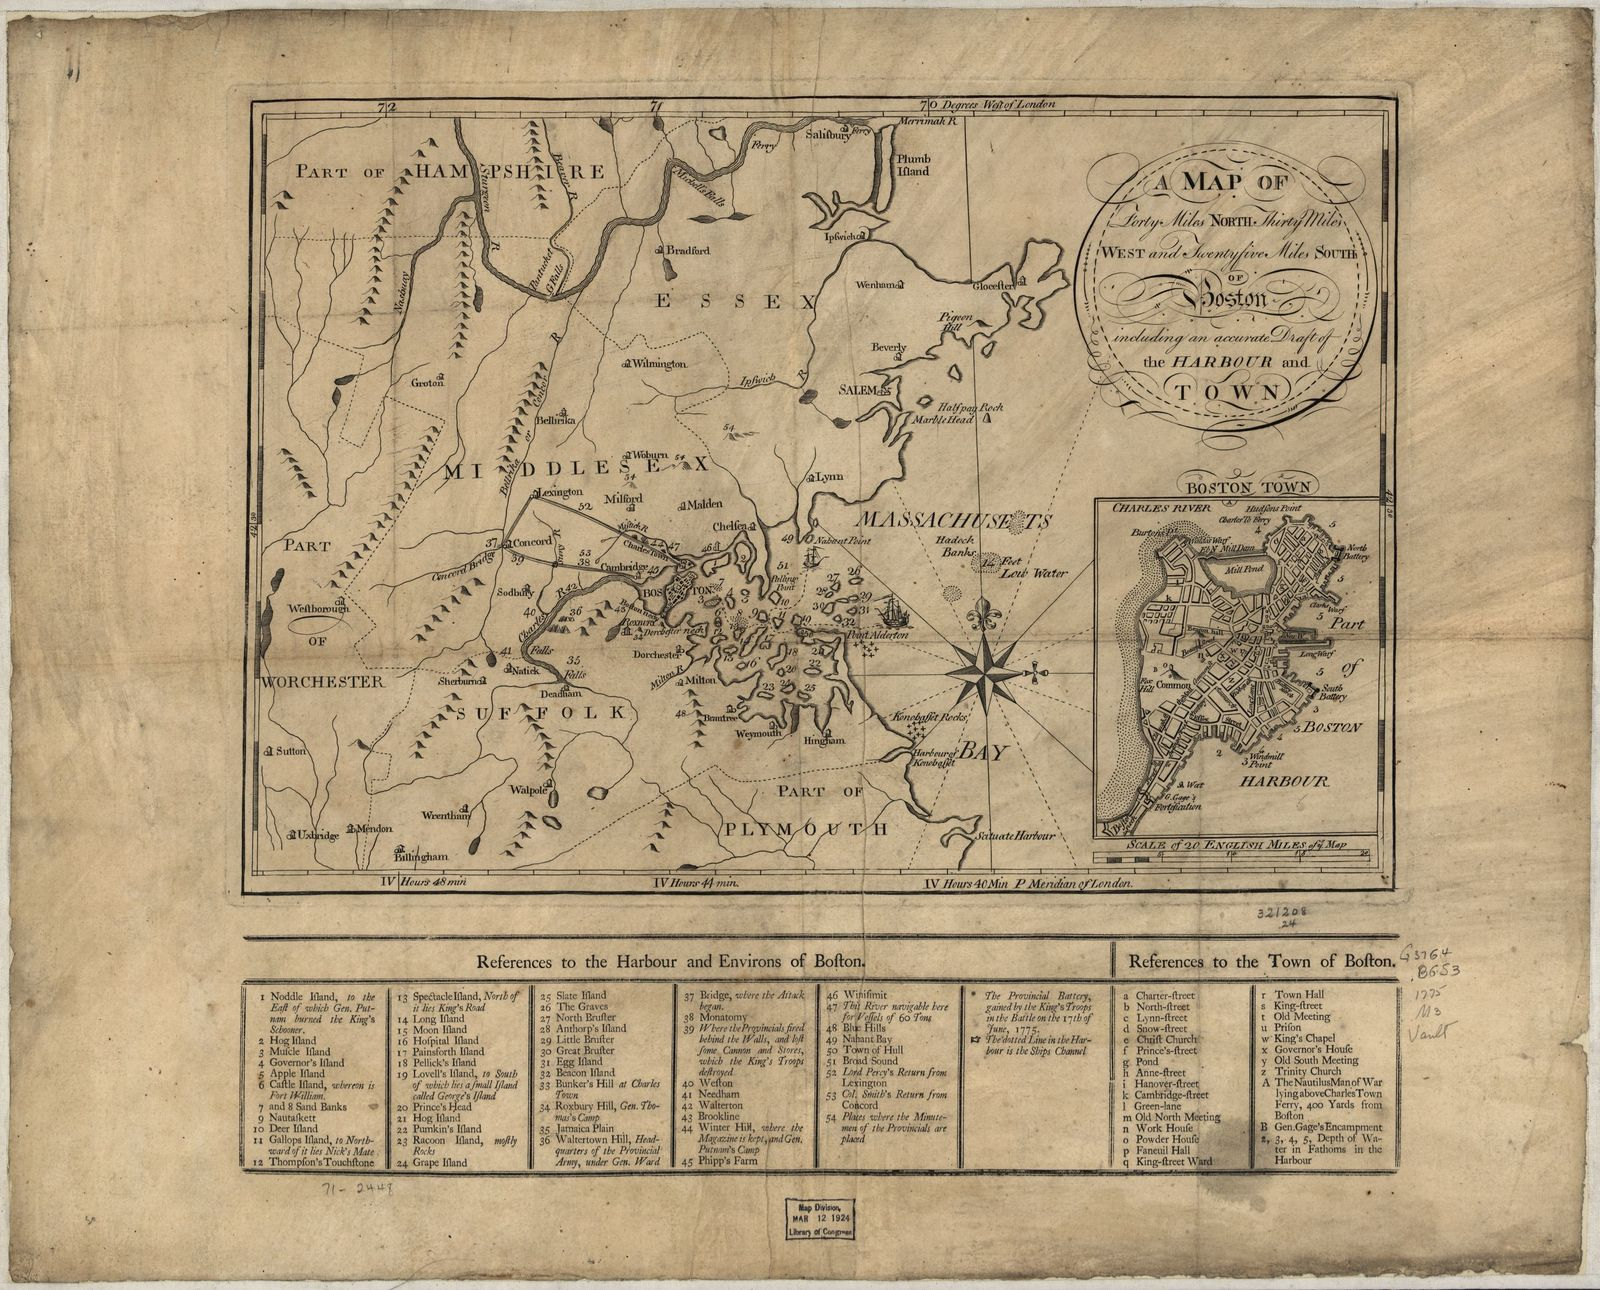 A Map of forty miles north, thirty miles west, and twentyfive miles south of Boston, including an accurate draft of the harbour and town.